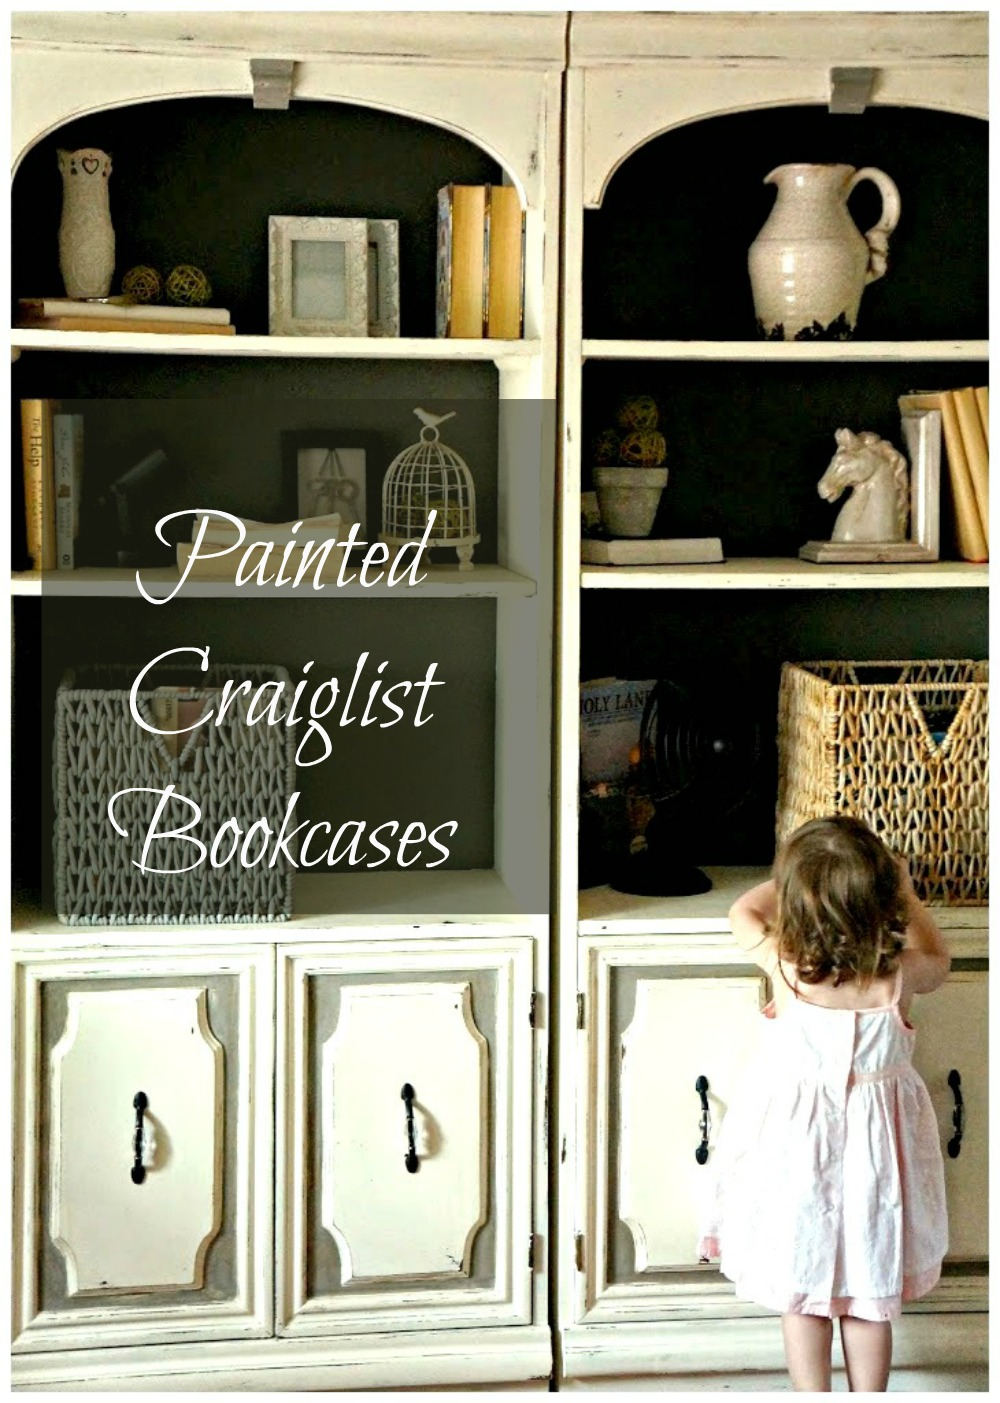 painted-craiglist-bookcases